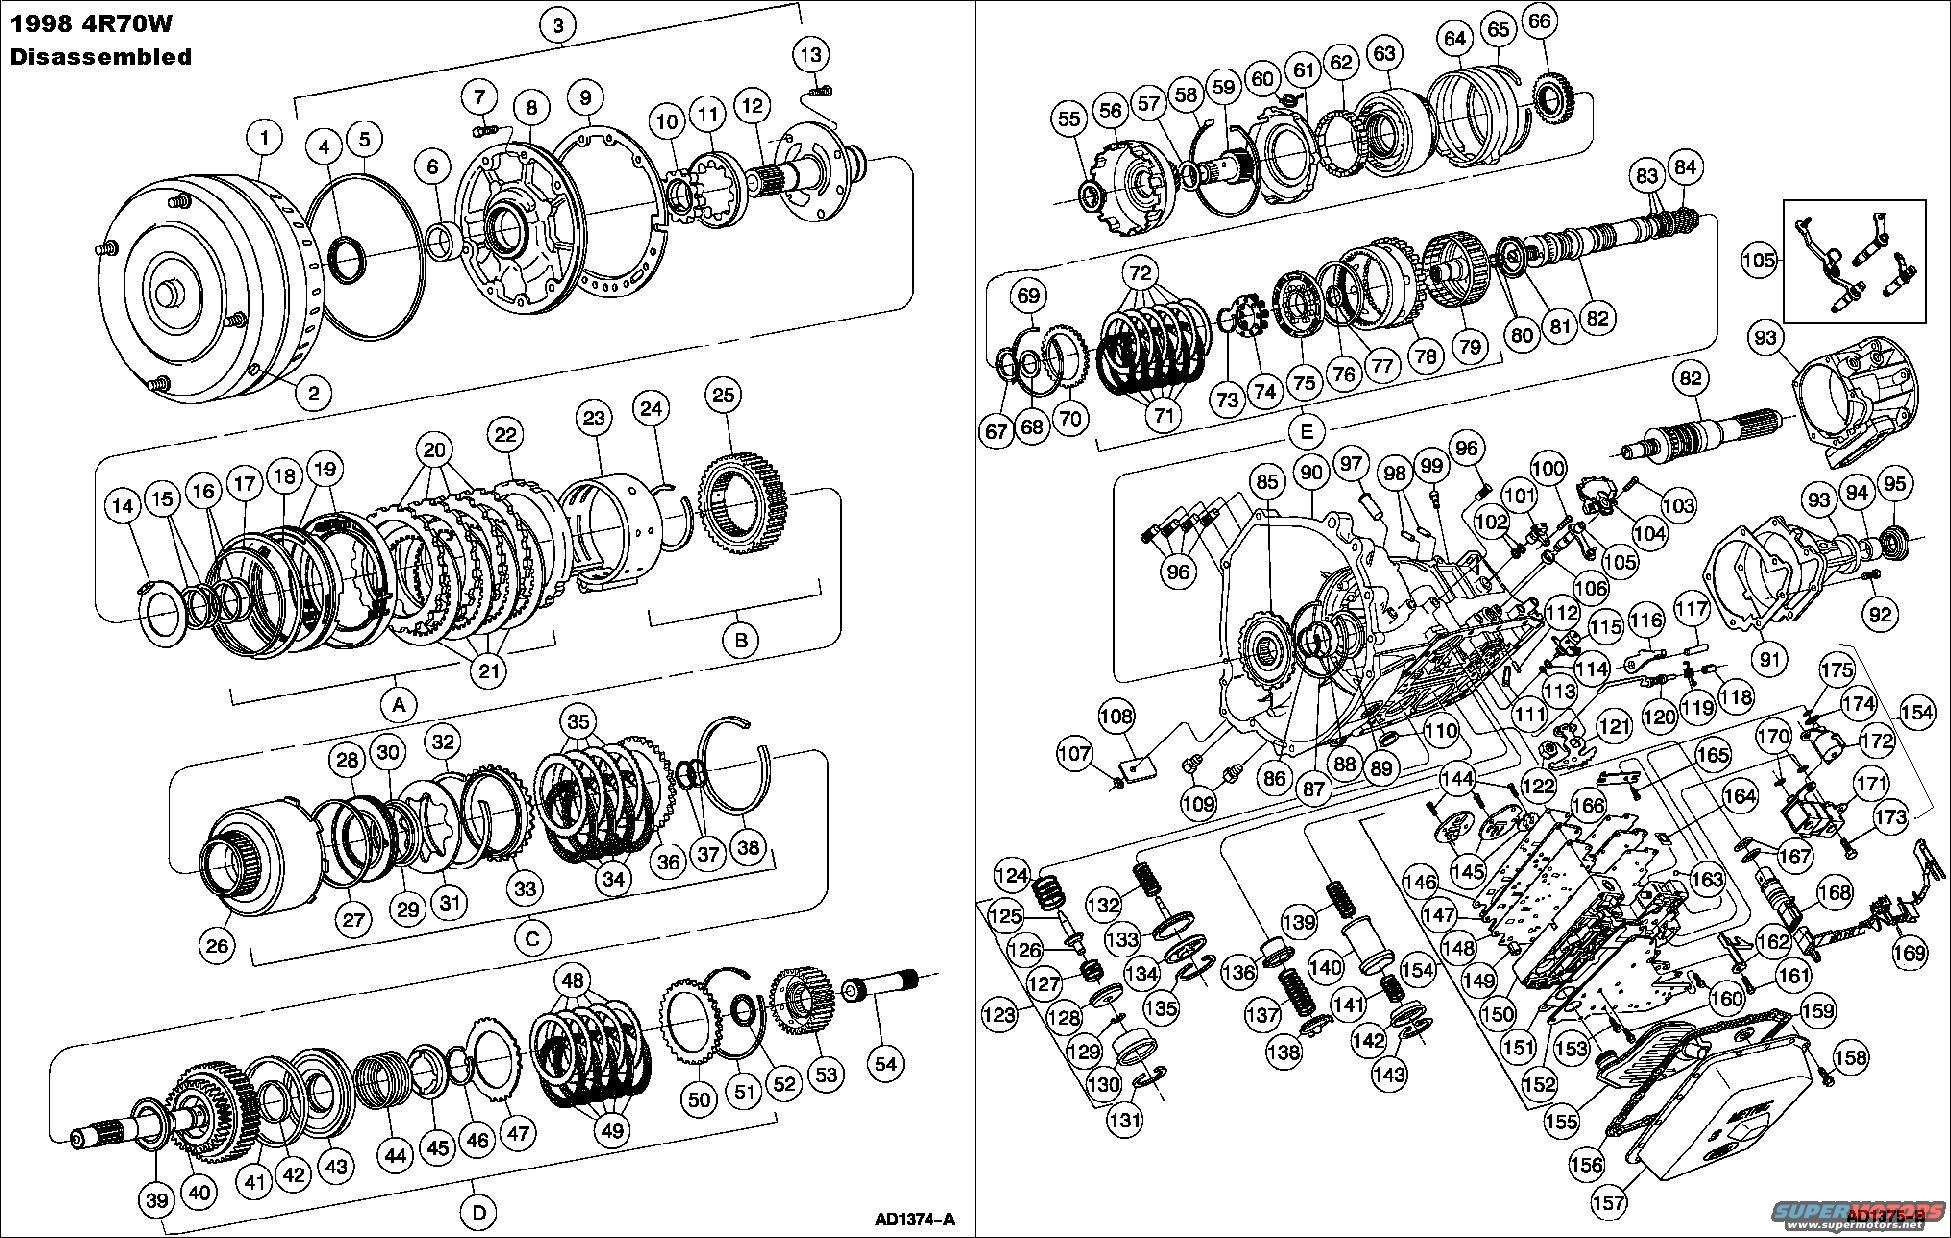 T4085986 Drive belt diagram 4 6liter lincoln further 201547546839 as well 944na exhaust system also 6xlk9 1994 Ford F350 Crew Cab 46o Motor No Fuse Diagram No Parki as well 98 Toyota Ta a Maf Sensor Wiring Diagram. on ford crown victoria engine diagram